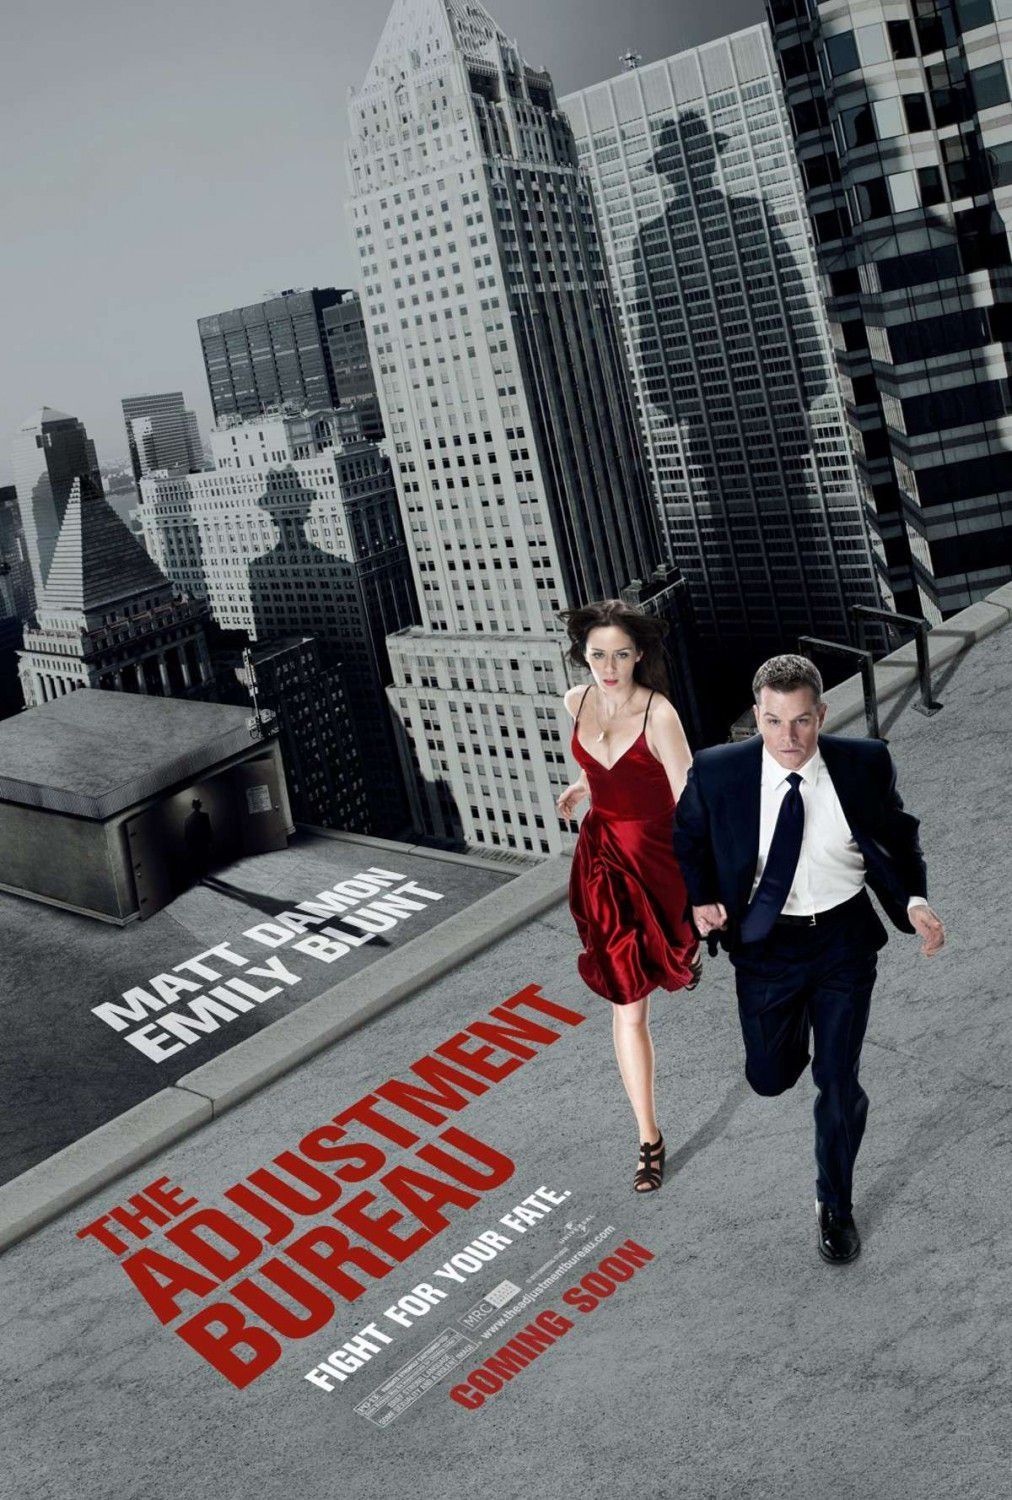 Adjustment Bureau - I Guardiani del Destino (2011) poster collection